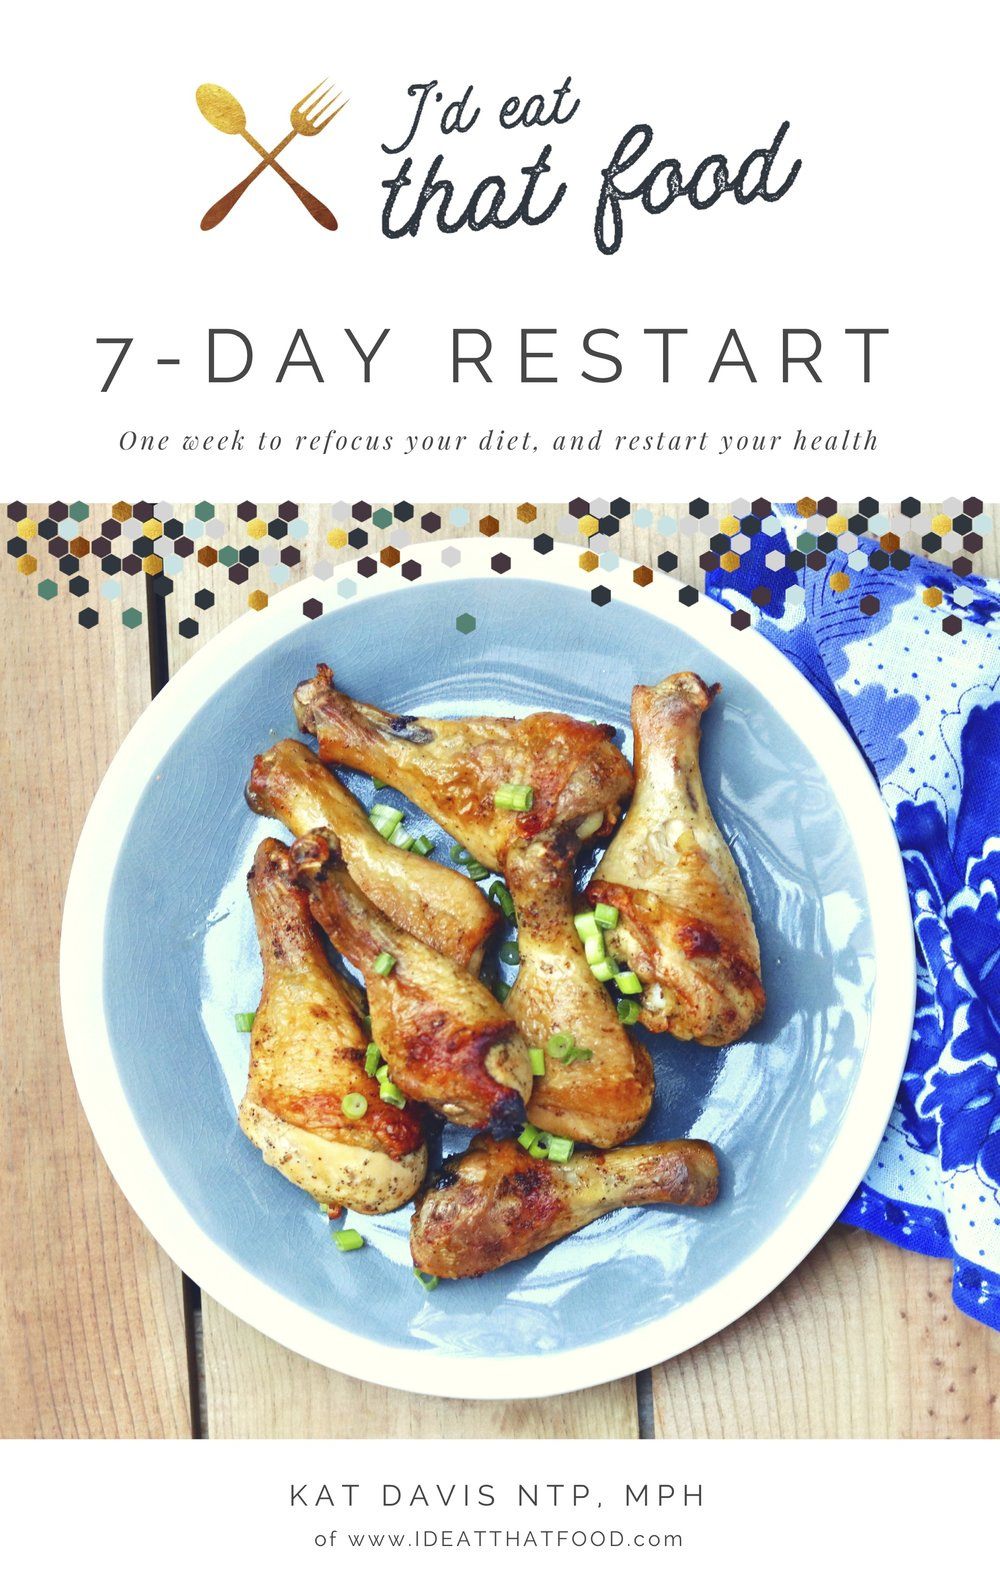 7-Day Restart by I'd Eat That Food